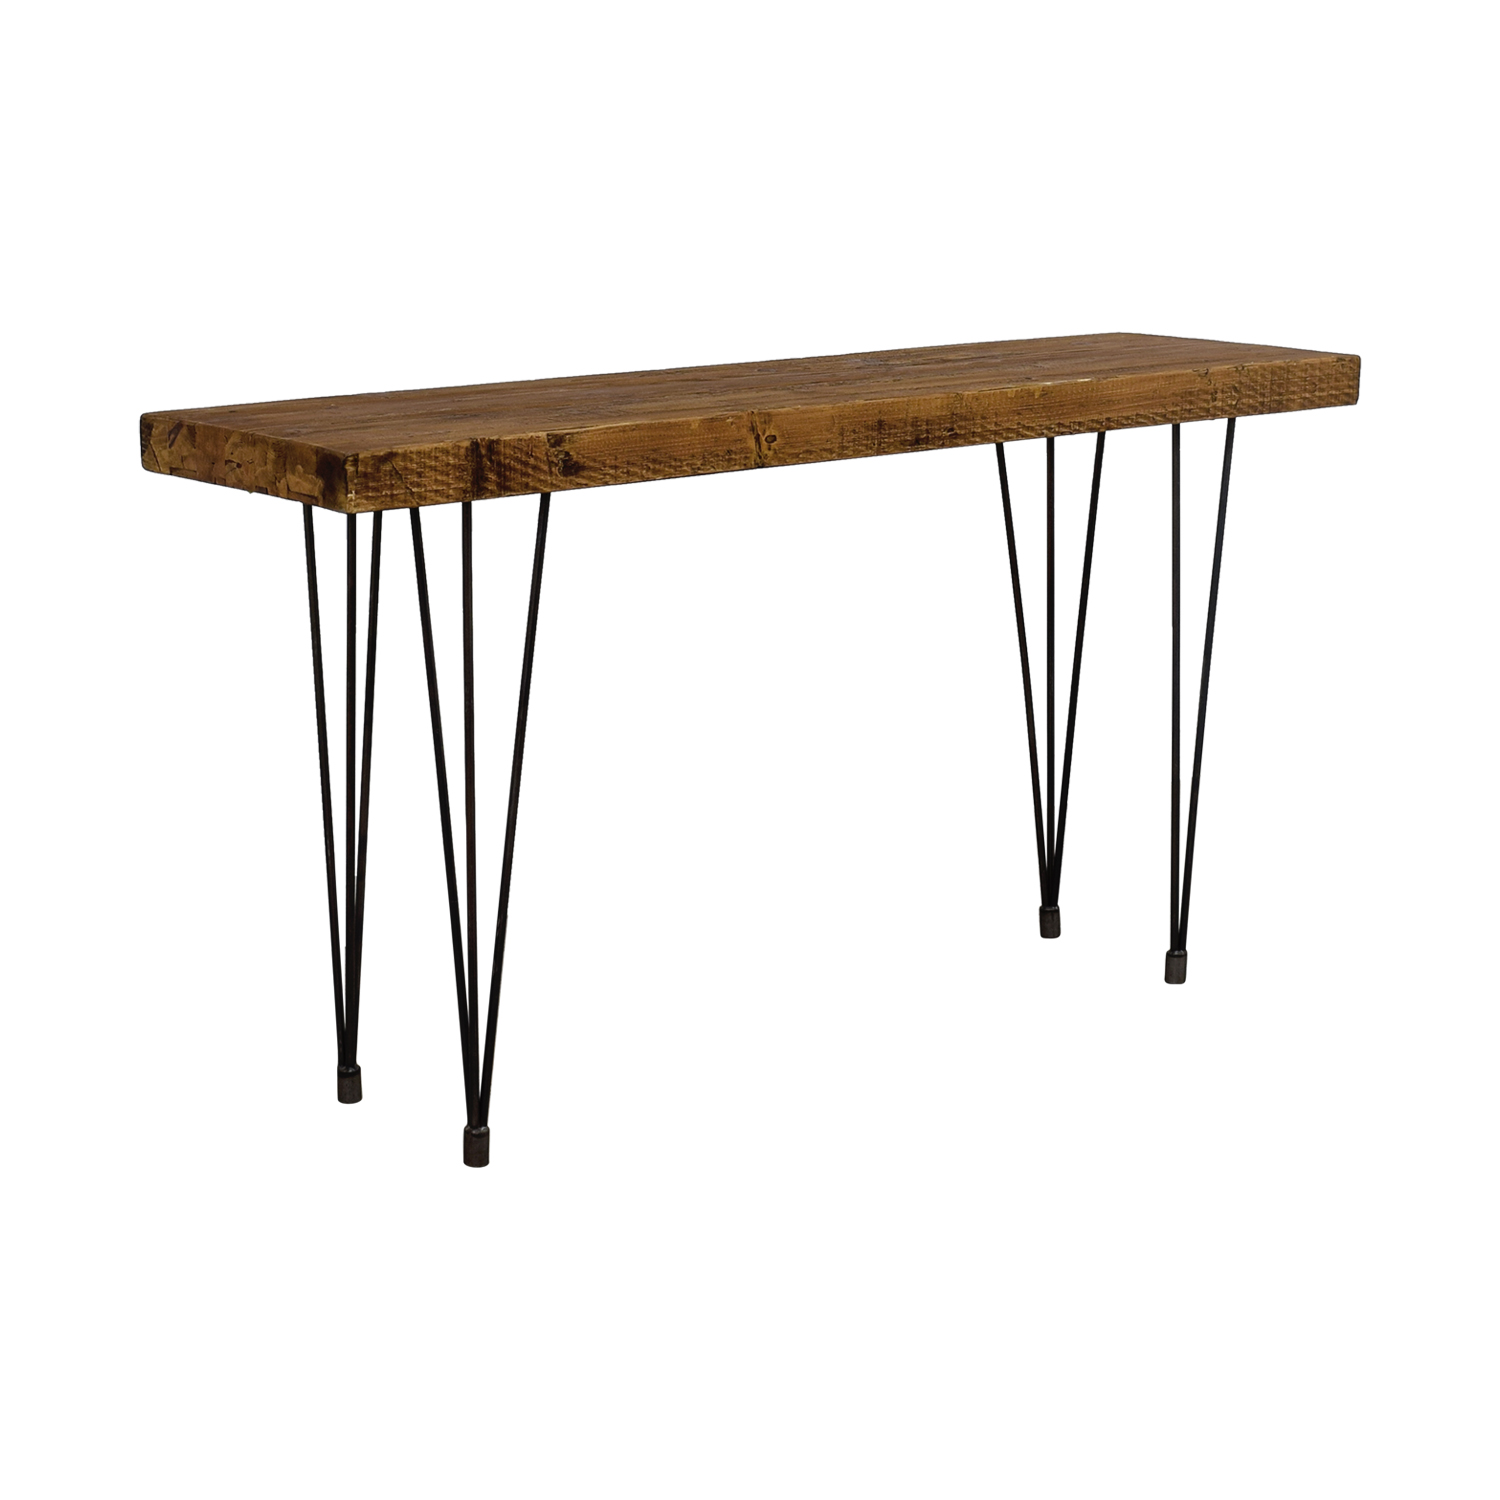 buy Does Home Collection Does Home Collection Boneta Rustic Wood Console online